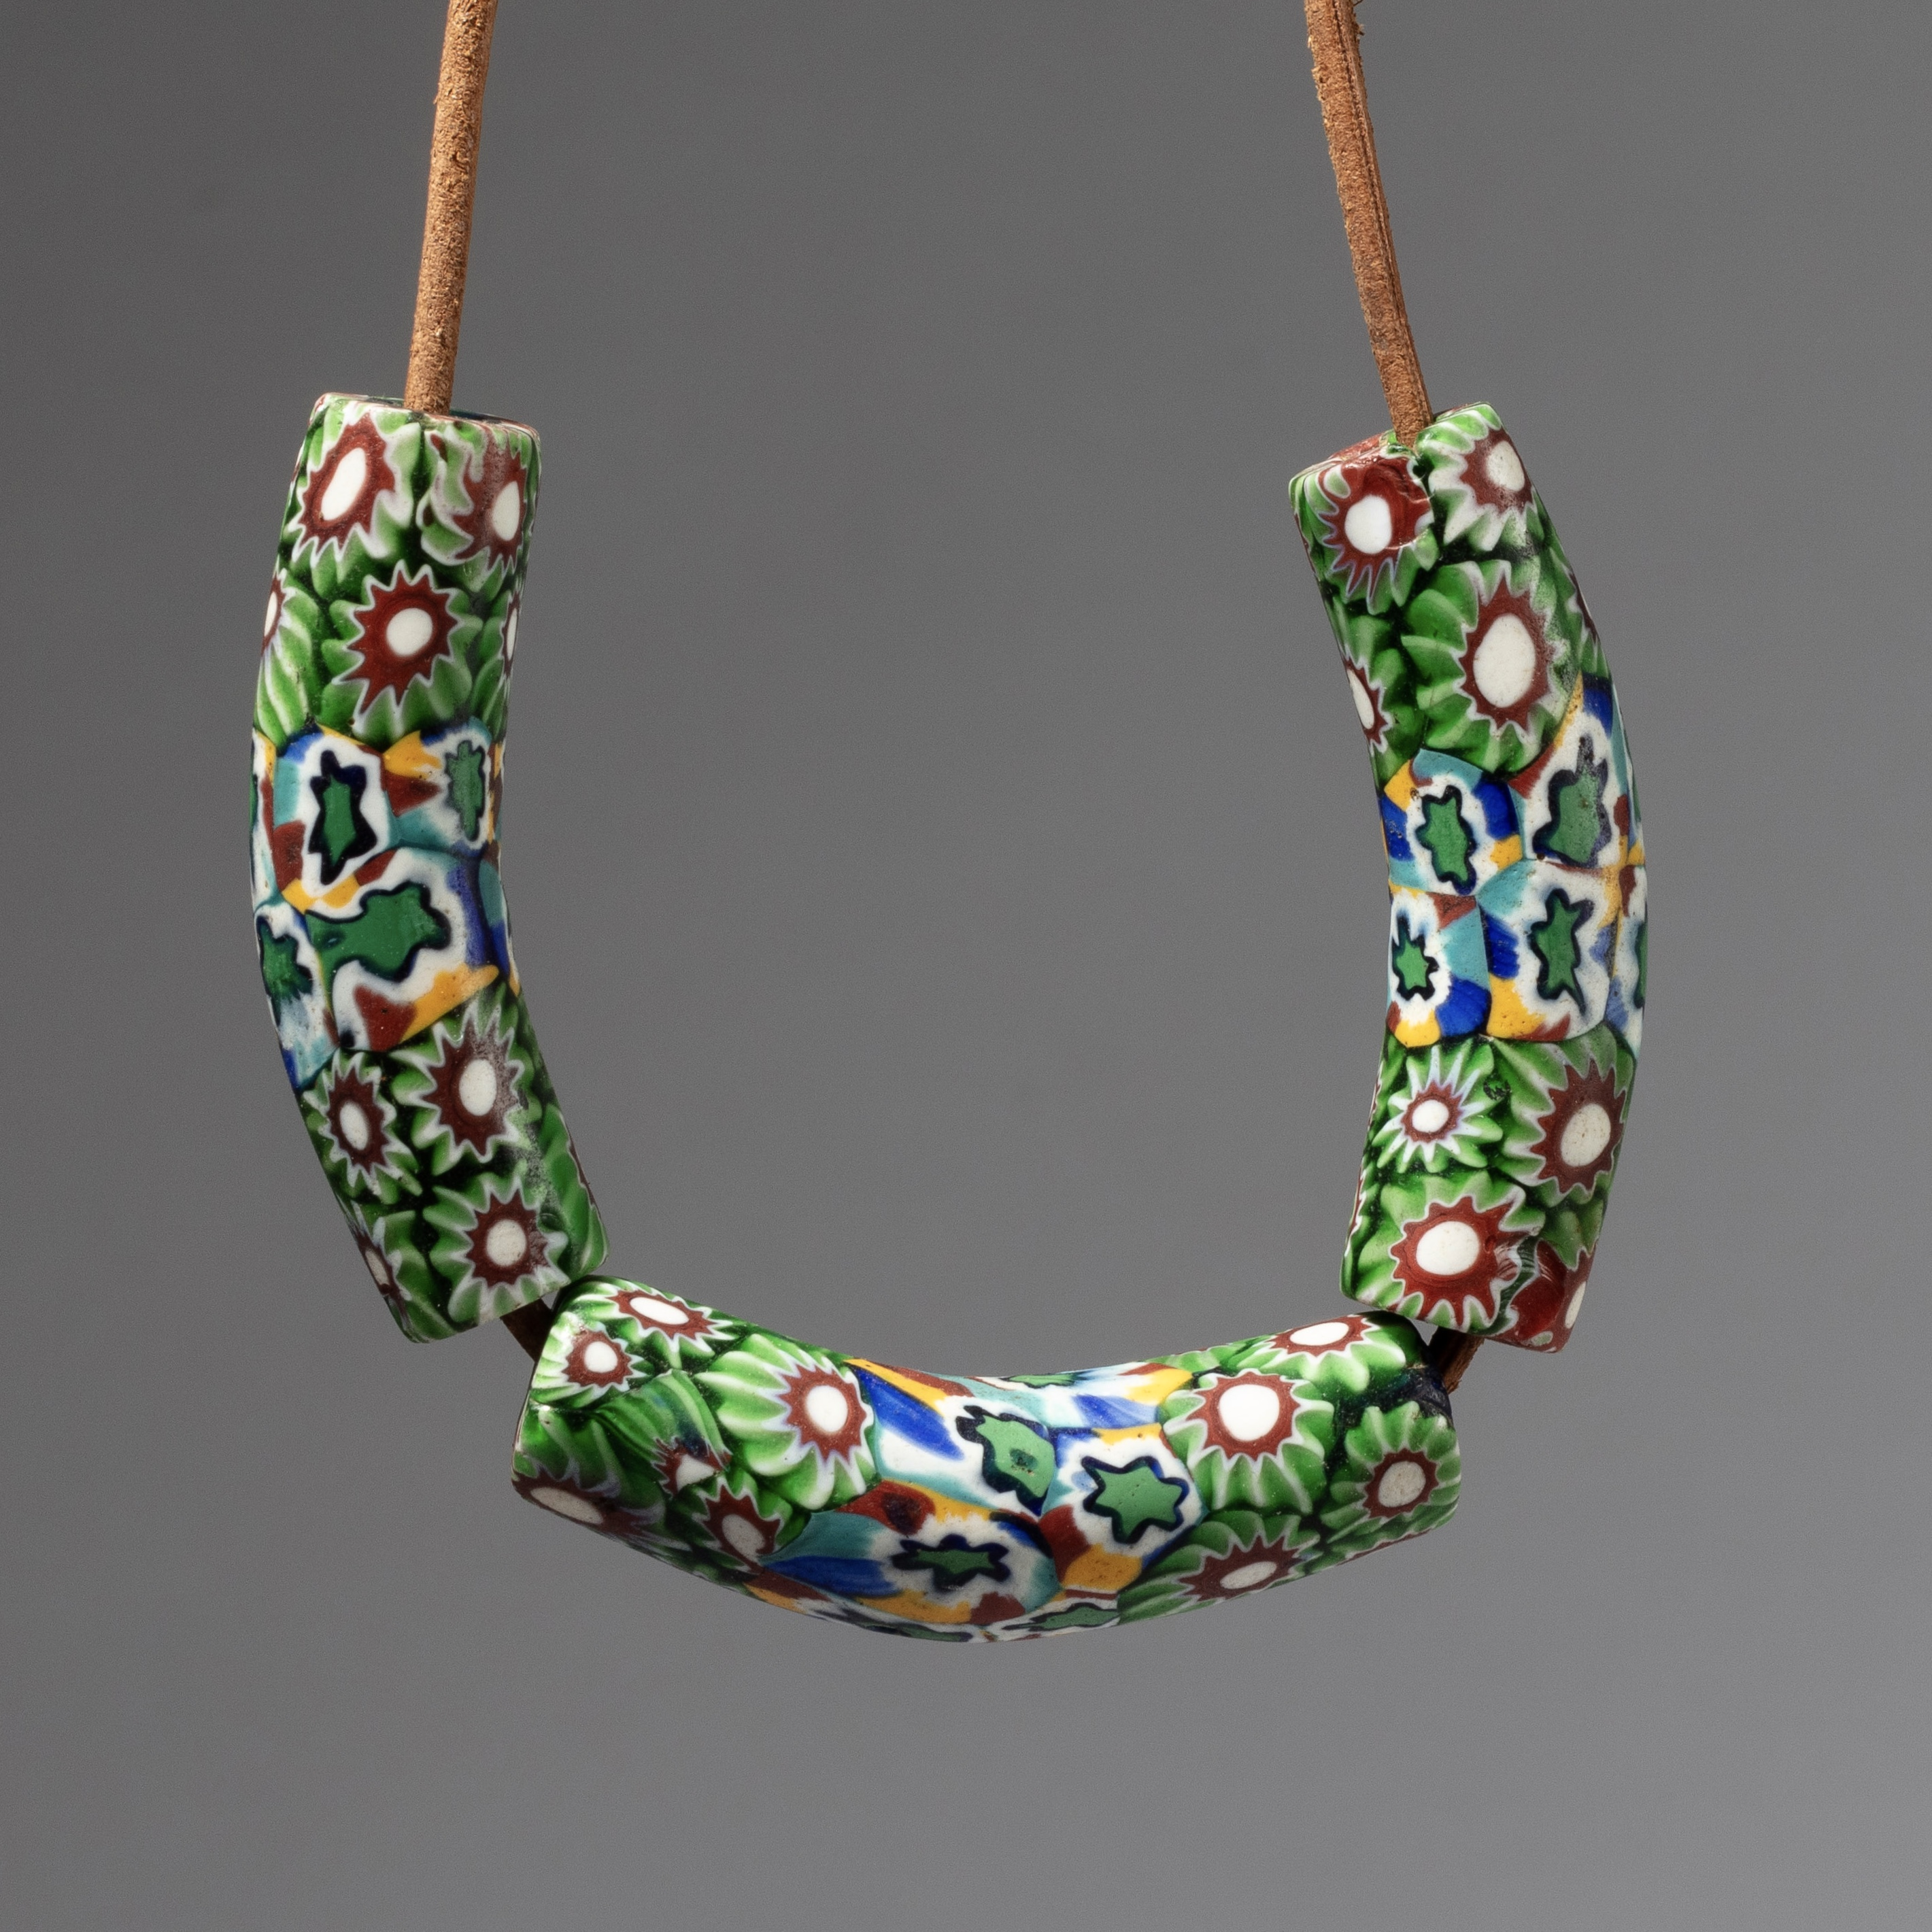 3 EXQUISITE 19THC VENETIAN GLASS MILLE FIORE LARGE TRADE BEADS ( No 4352)